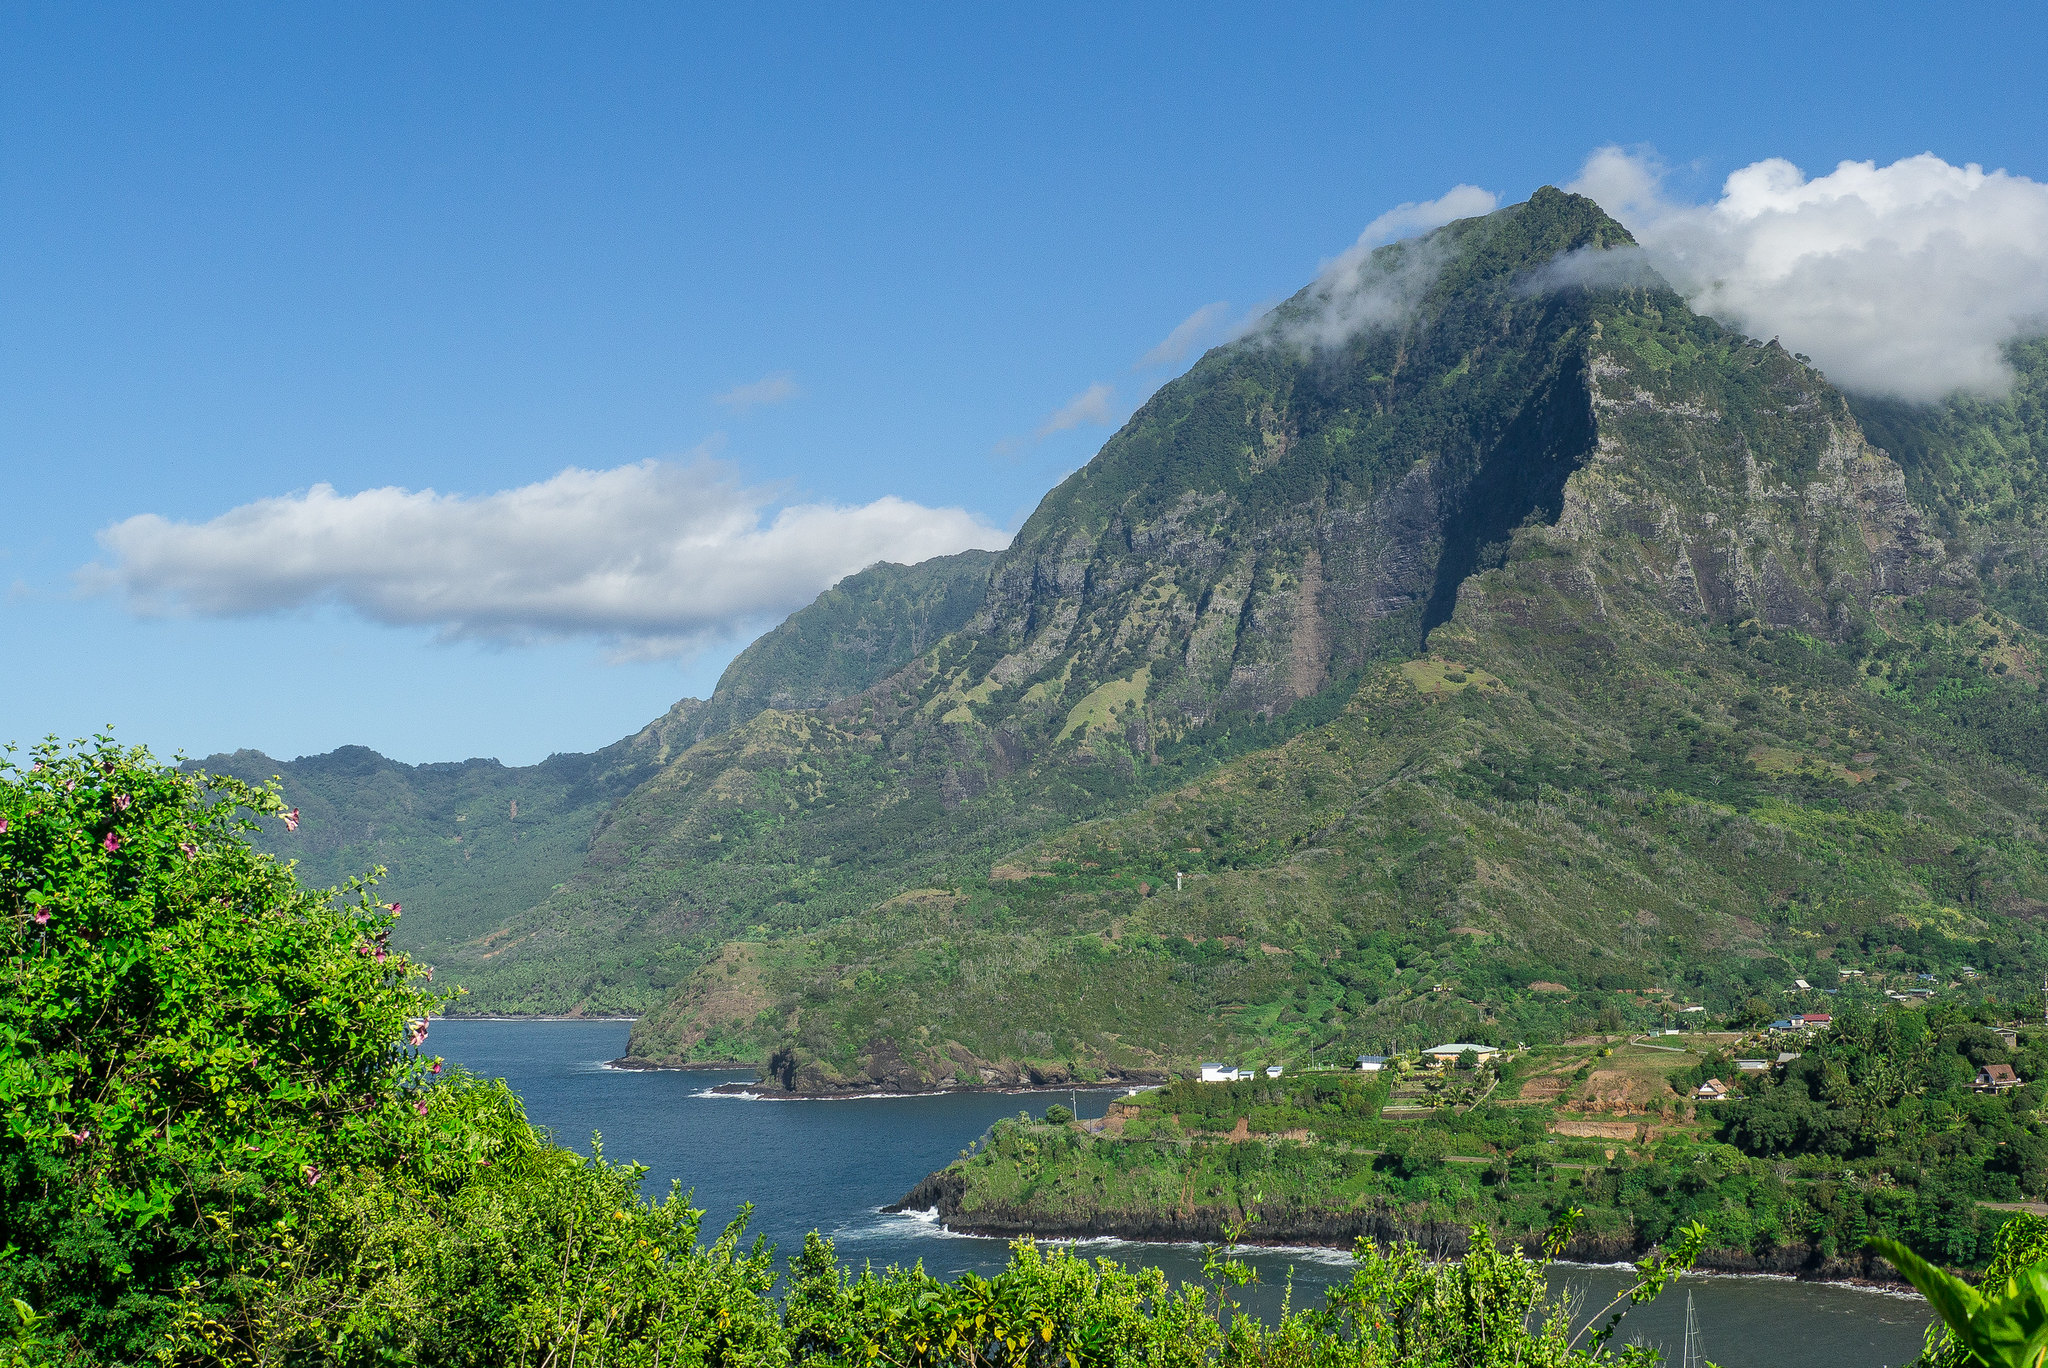 [QRT] TX7T – Marquesas Islands